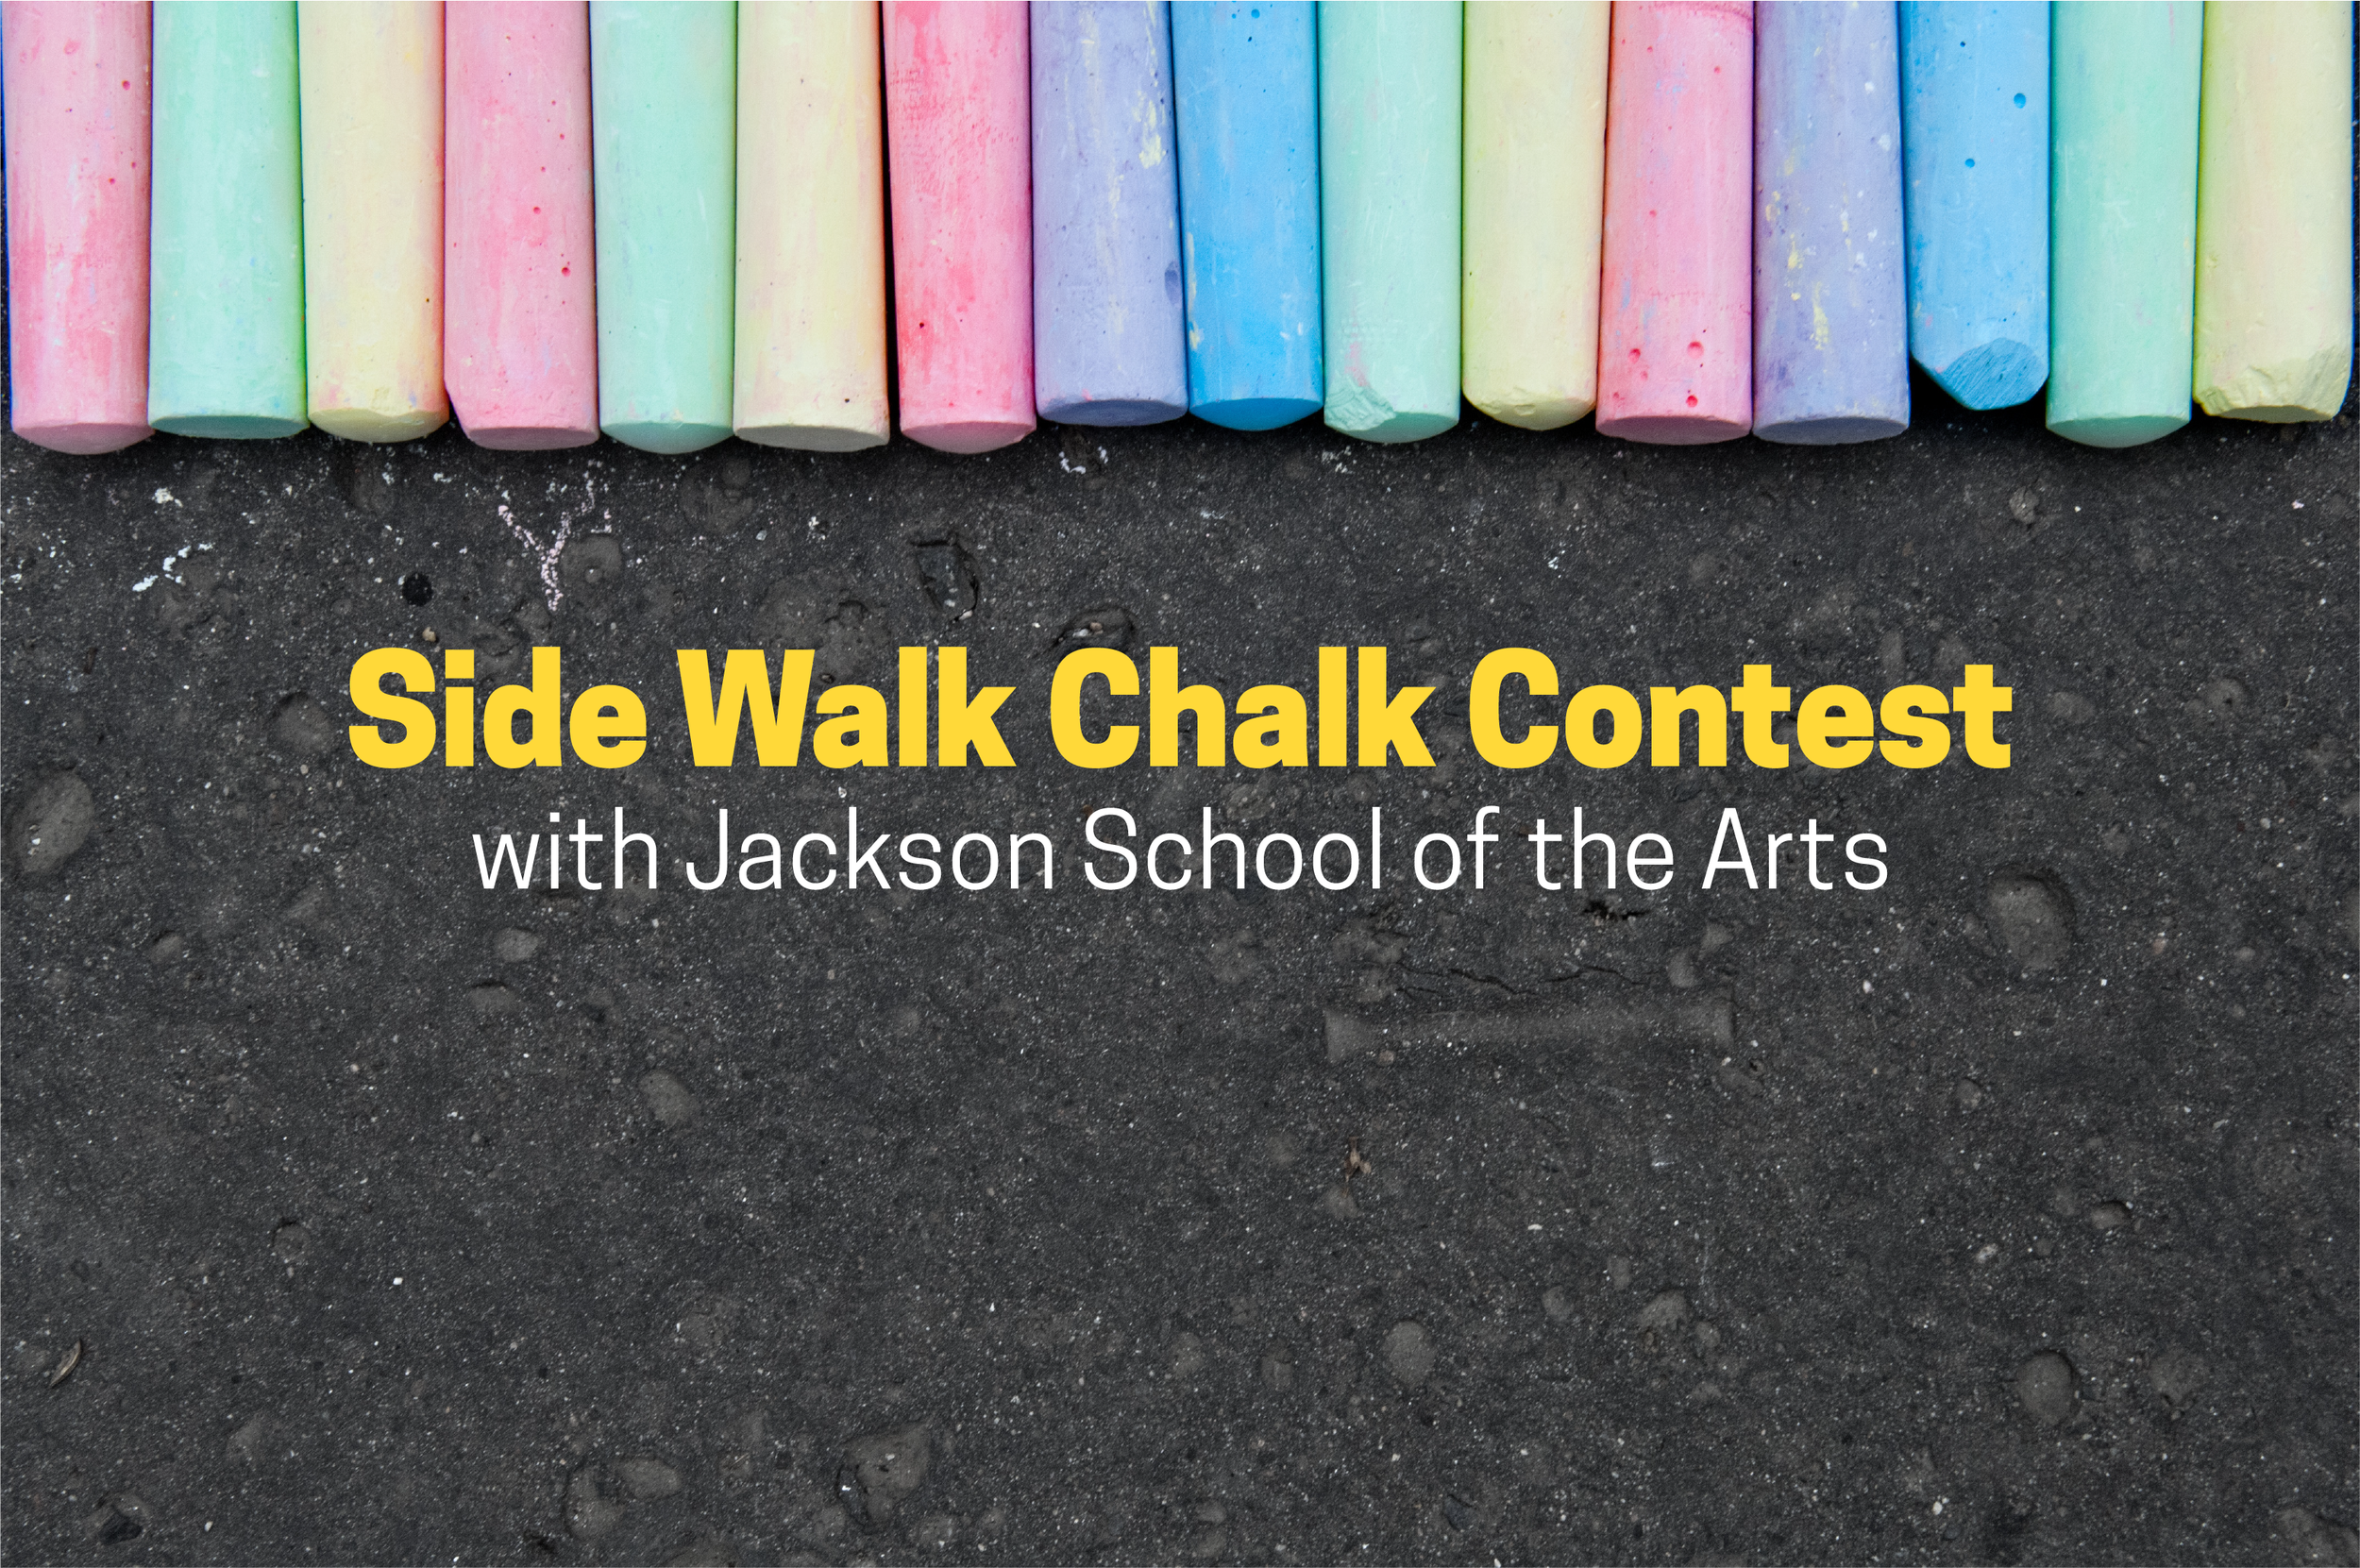 Sign Up for our Sidewalk Chalk Contest! - Hosted by the Jackson School of the Arts, the contest is free and anyone can join! We have 25 spots available for this event, which takes place on Sunday, September 8 from 11am to 3pm.Each artist will receive an area on the ground and must complete the piece between 11am and 3pm to be considered for one of the prizes. Winners of the contest will be announced during the intermission of the Capital City Brass Band Concert that afternoon. YOU MUST BE REGISTERED TO WIN!